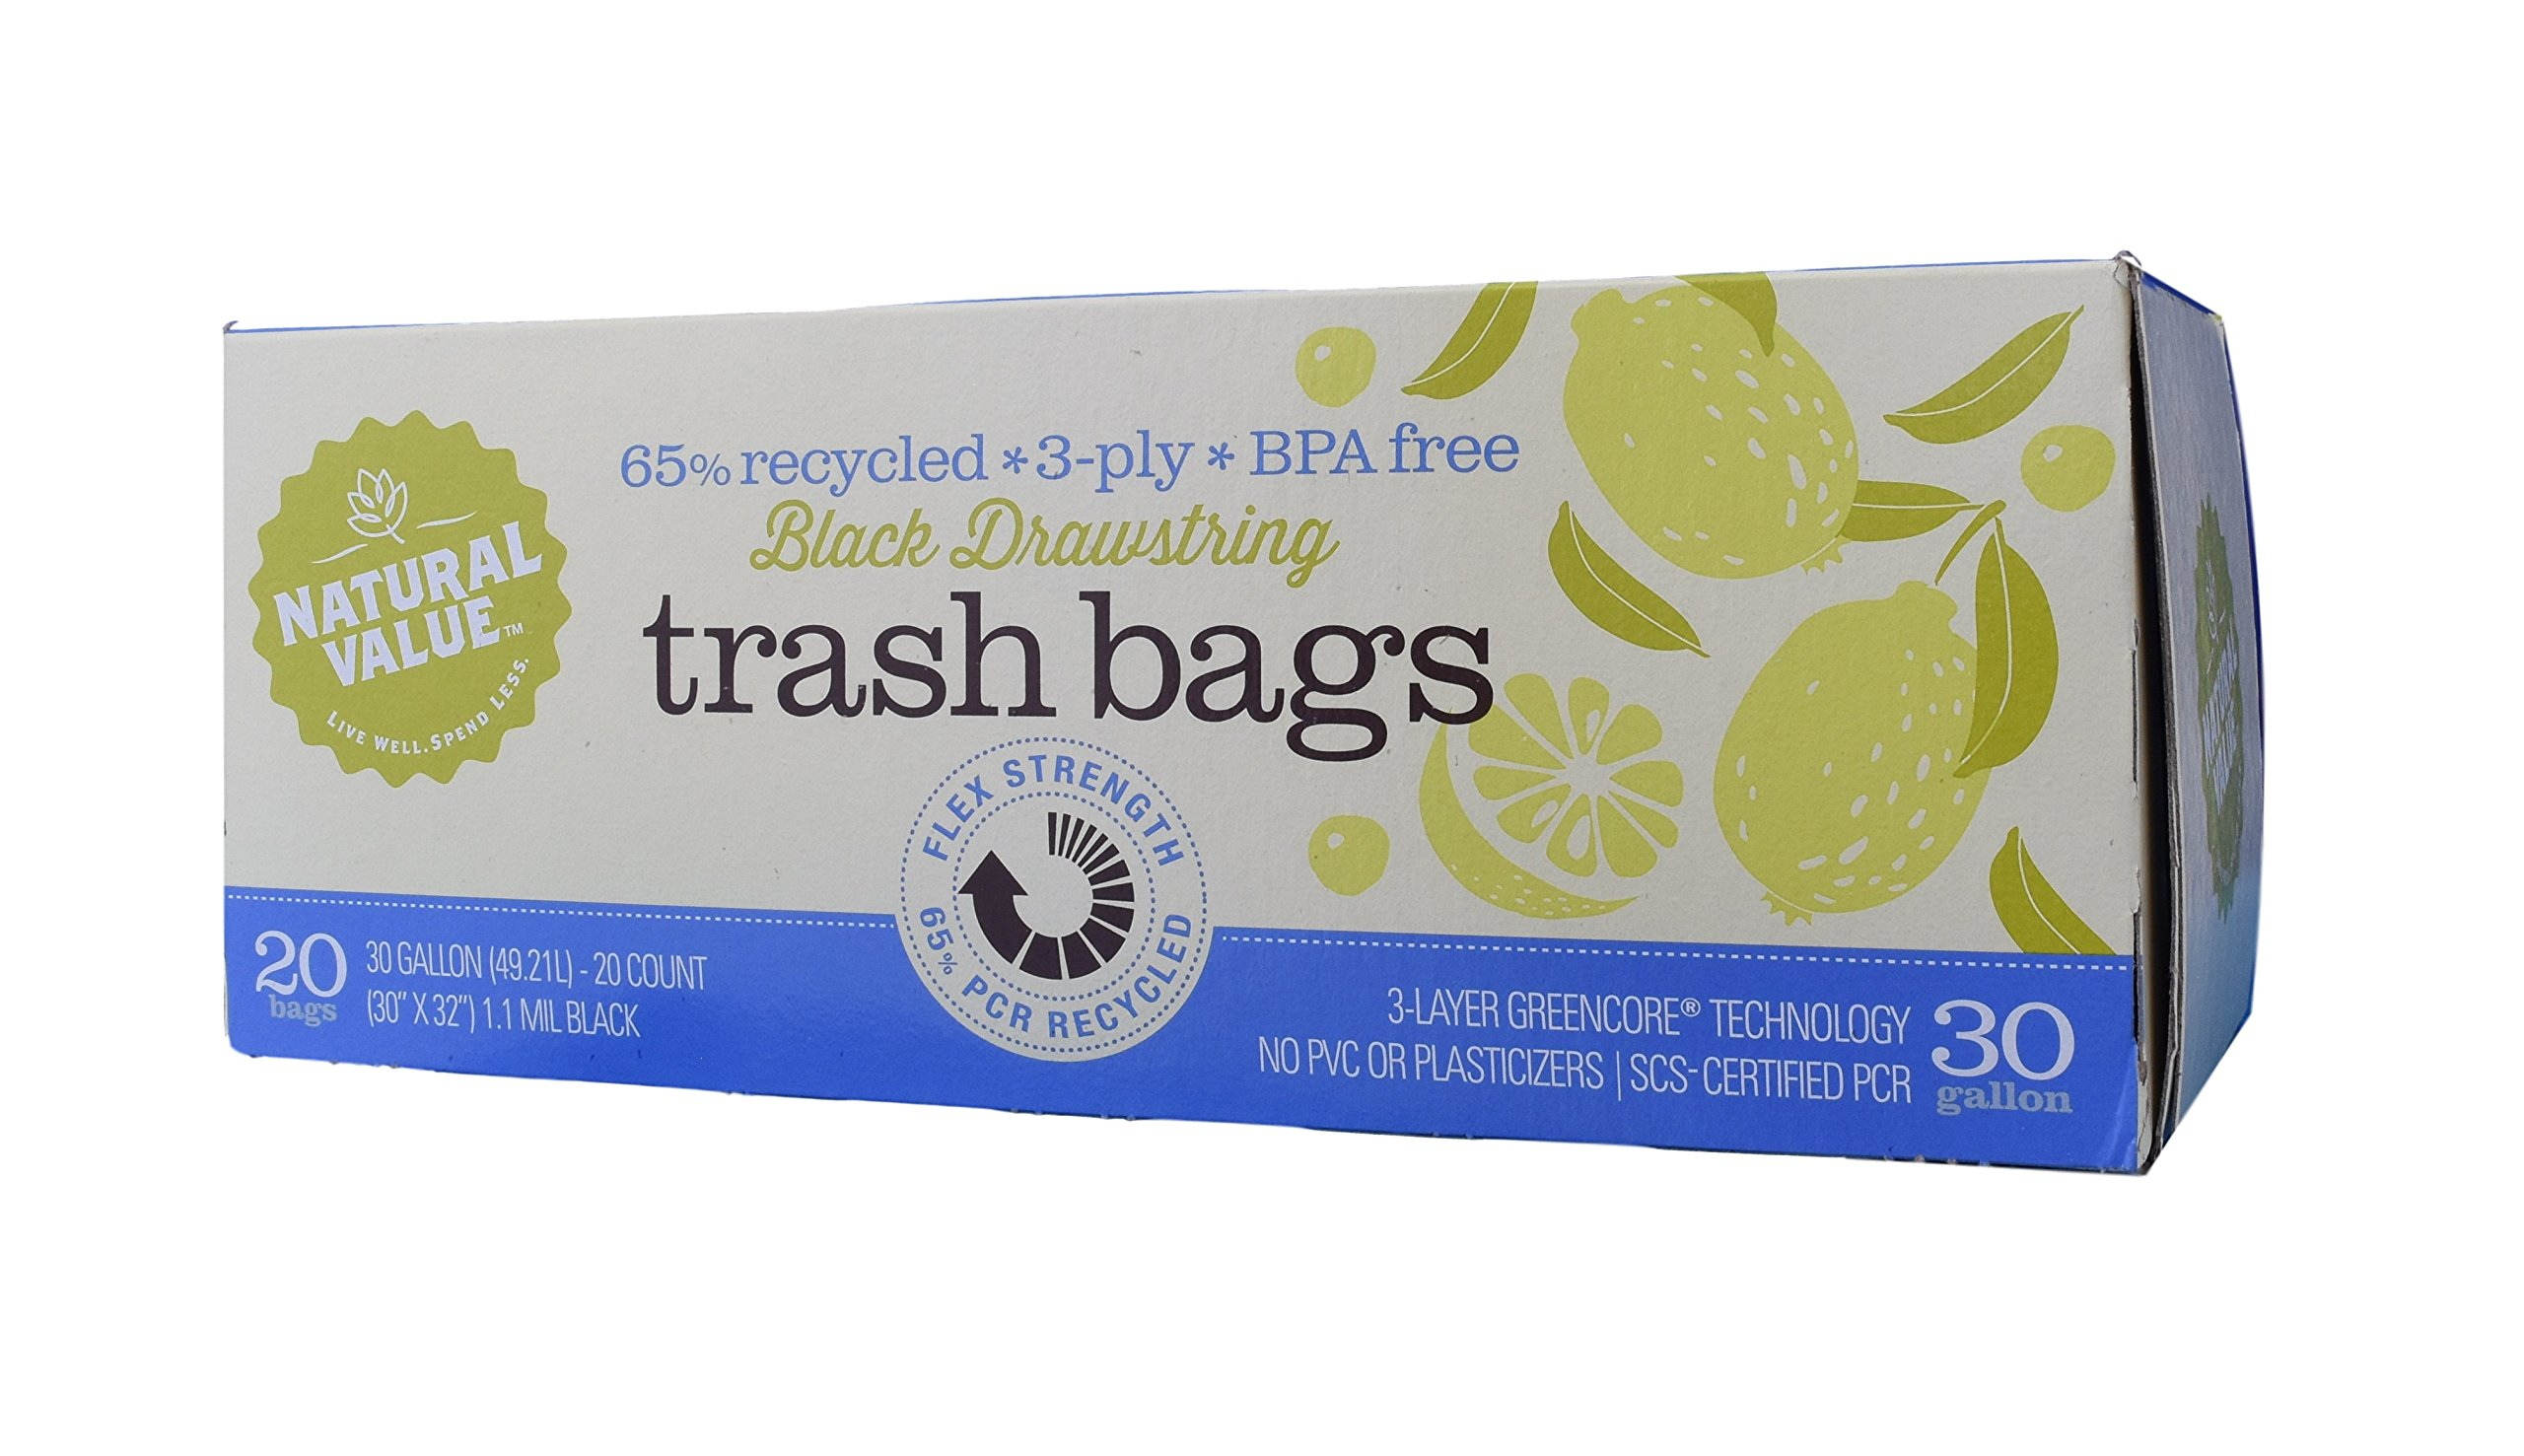 Natural Value - Black Drawstring Trash Bags - 30 Gallon - 20 Count - Pack of 2